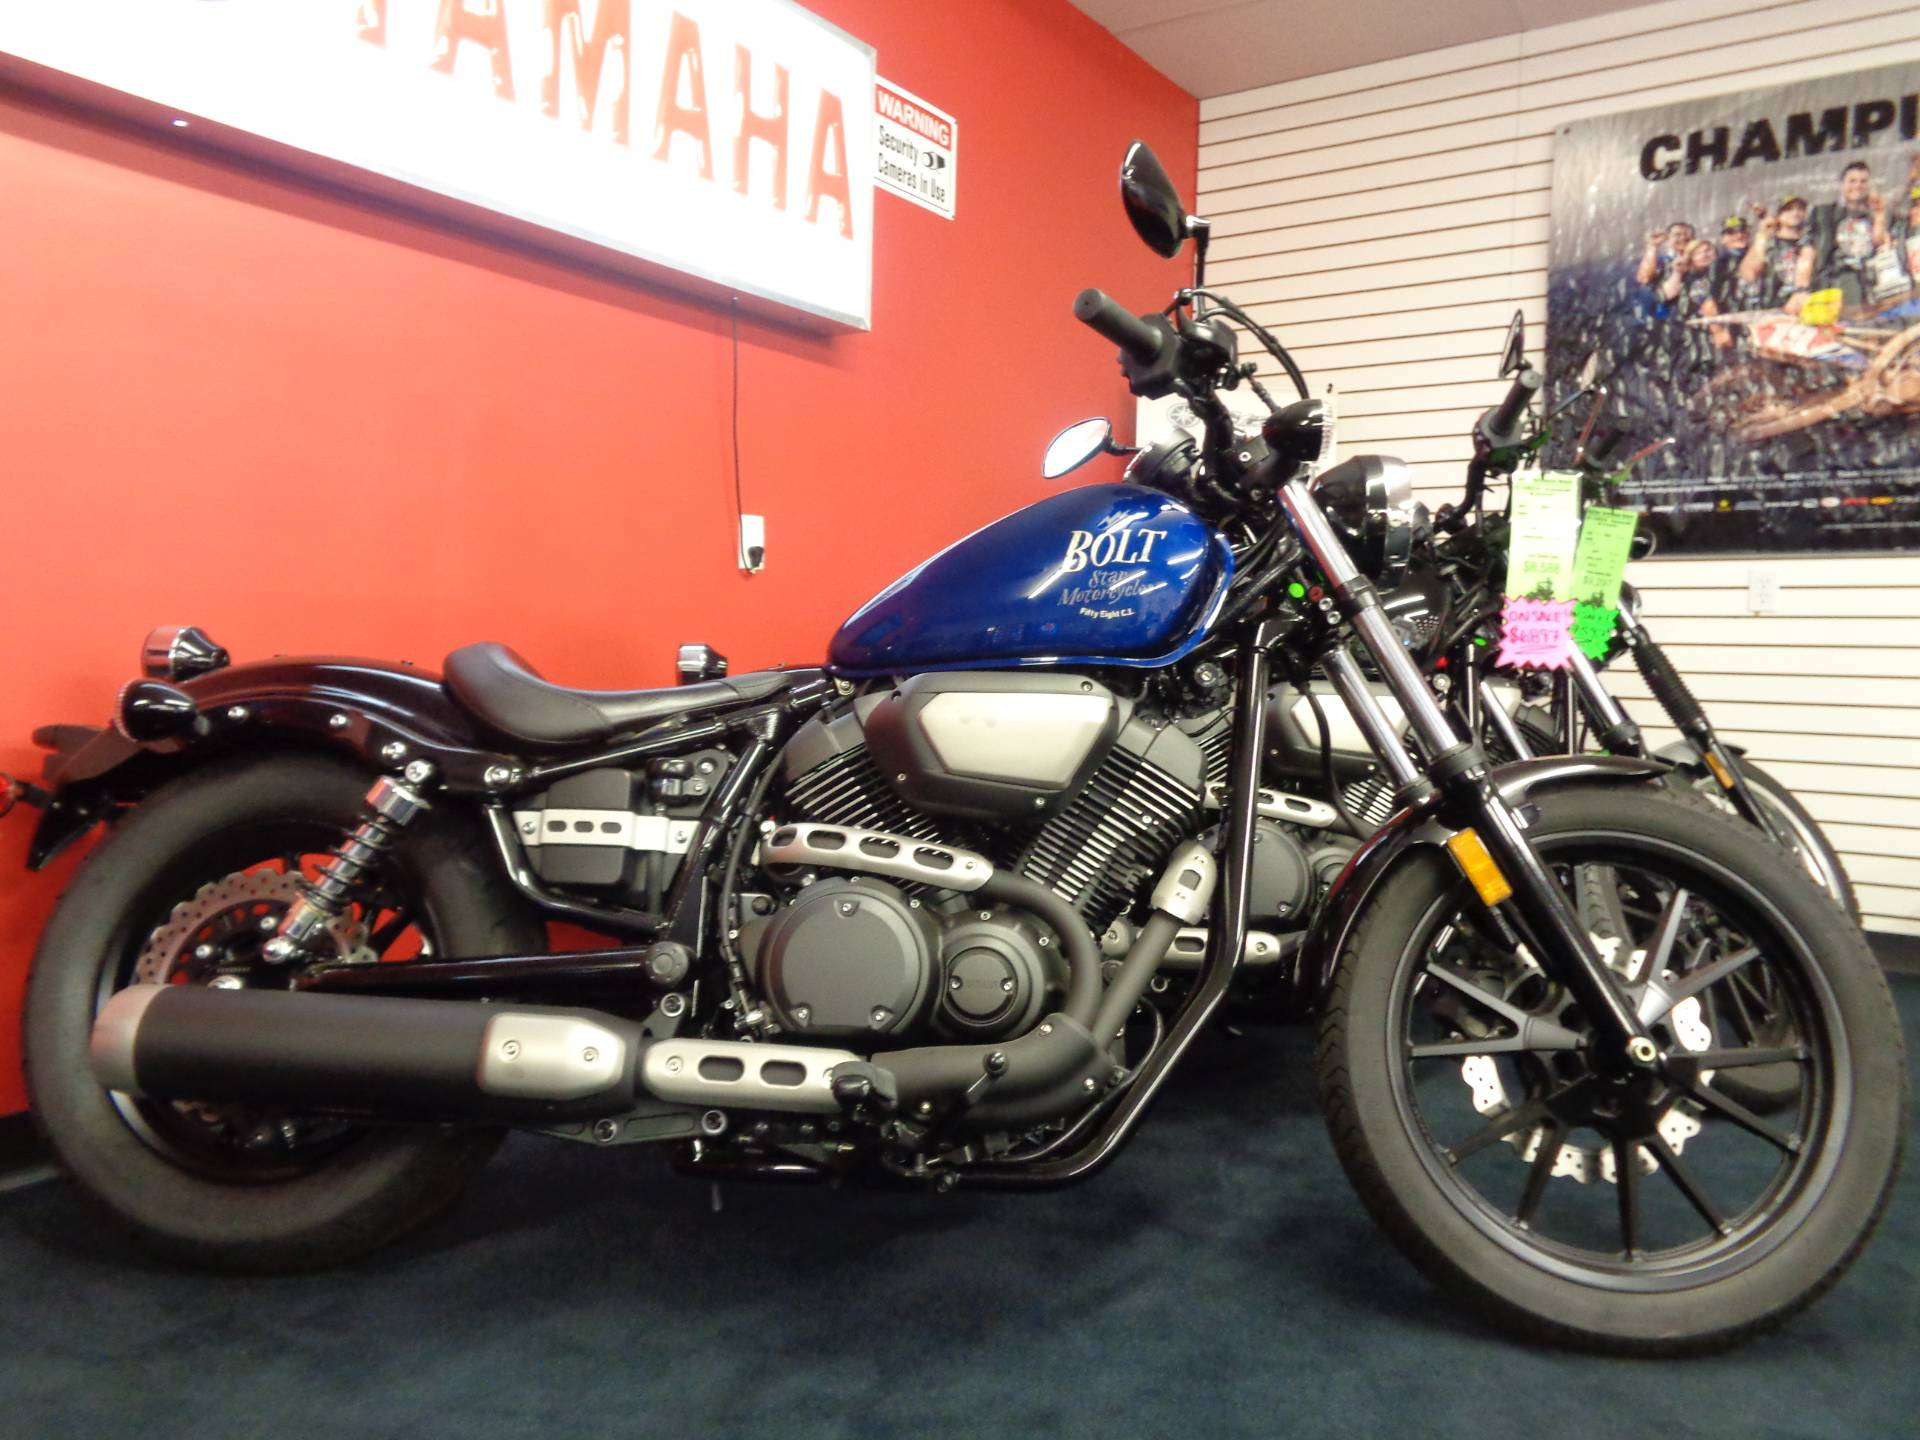 2016 Yamaha Bolt for sale 127118